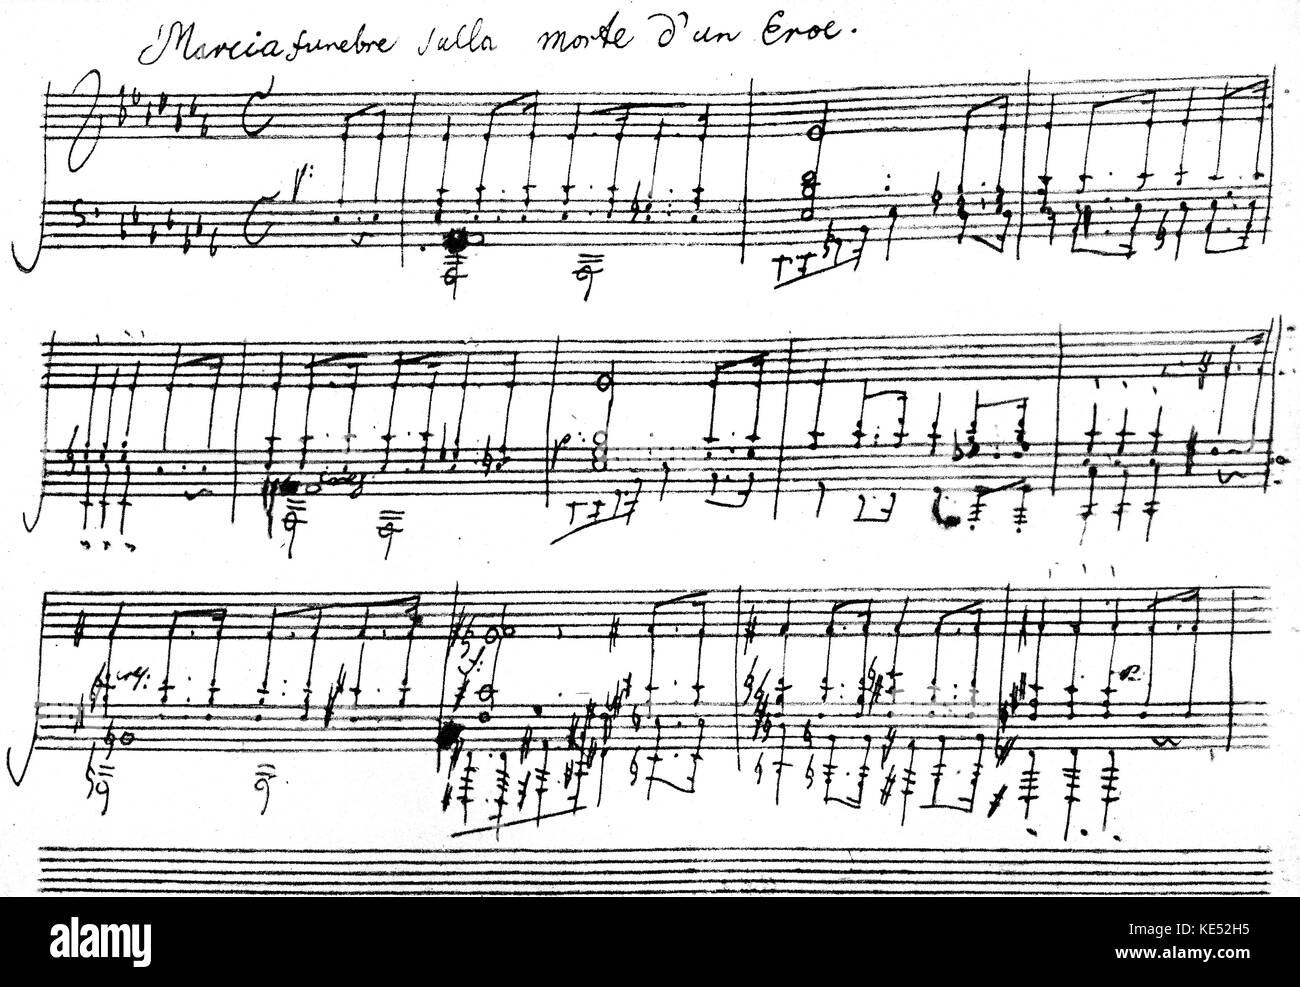 Ludwig van Beethoven 's  Piano Sonata No. 12 in A flat major, Op. 26, 1800-1801. Funeral March in third movement. - Stock Image